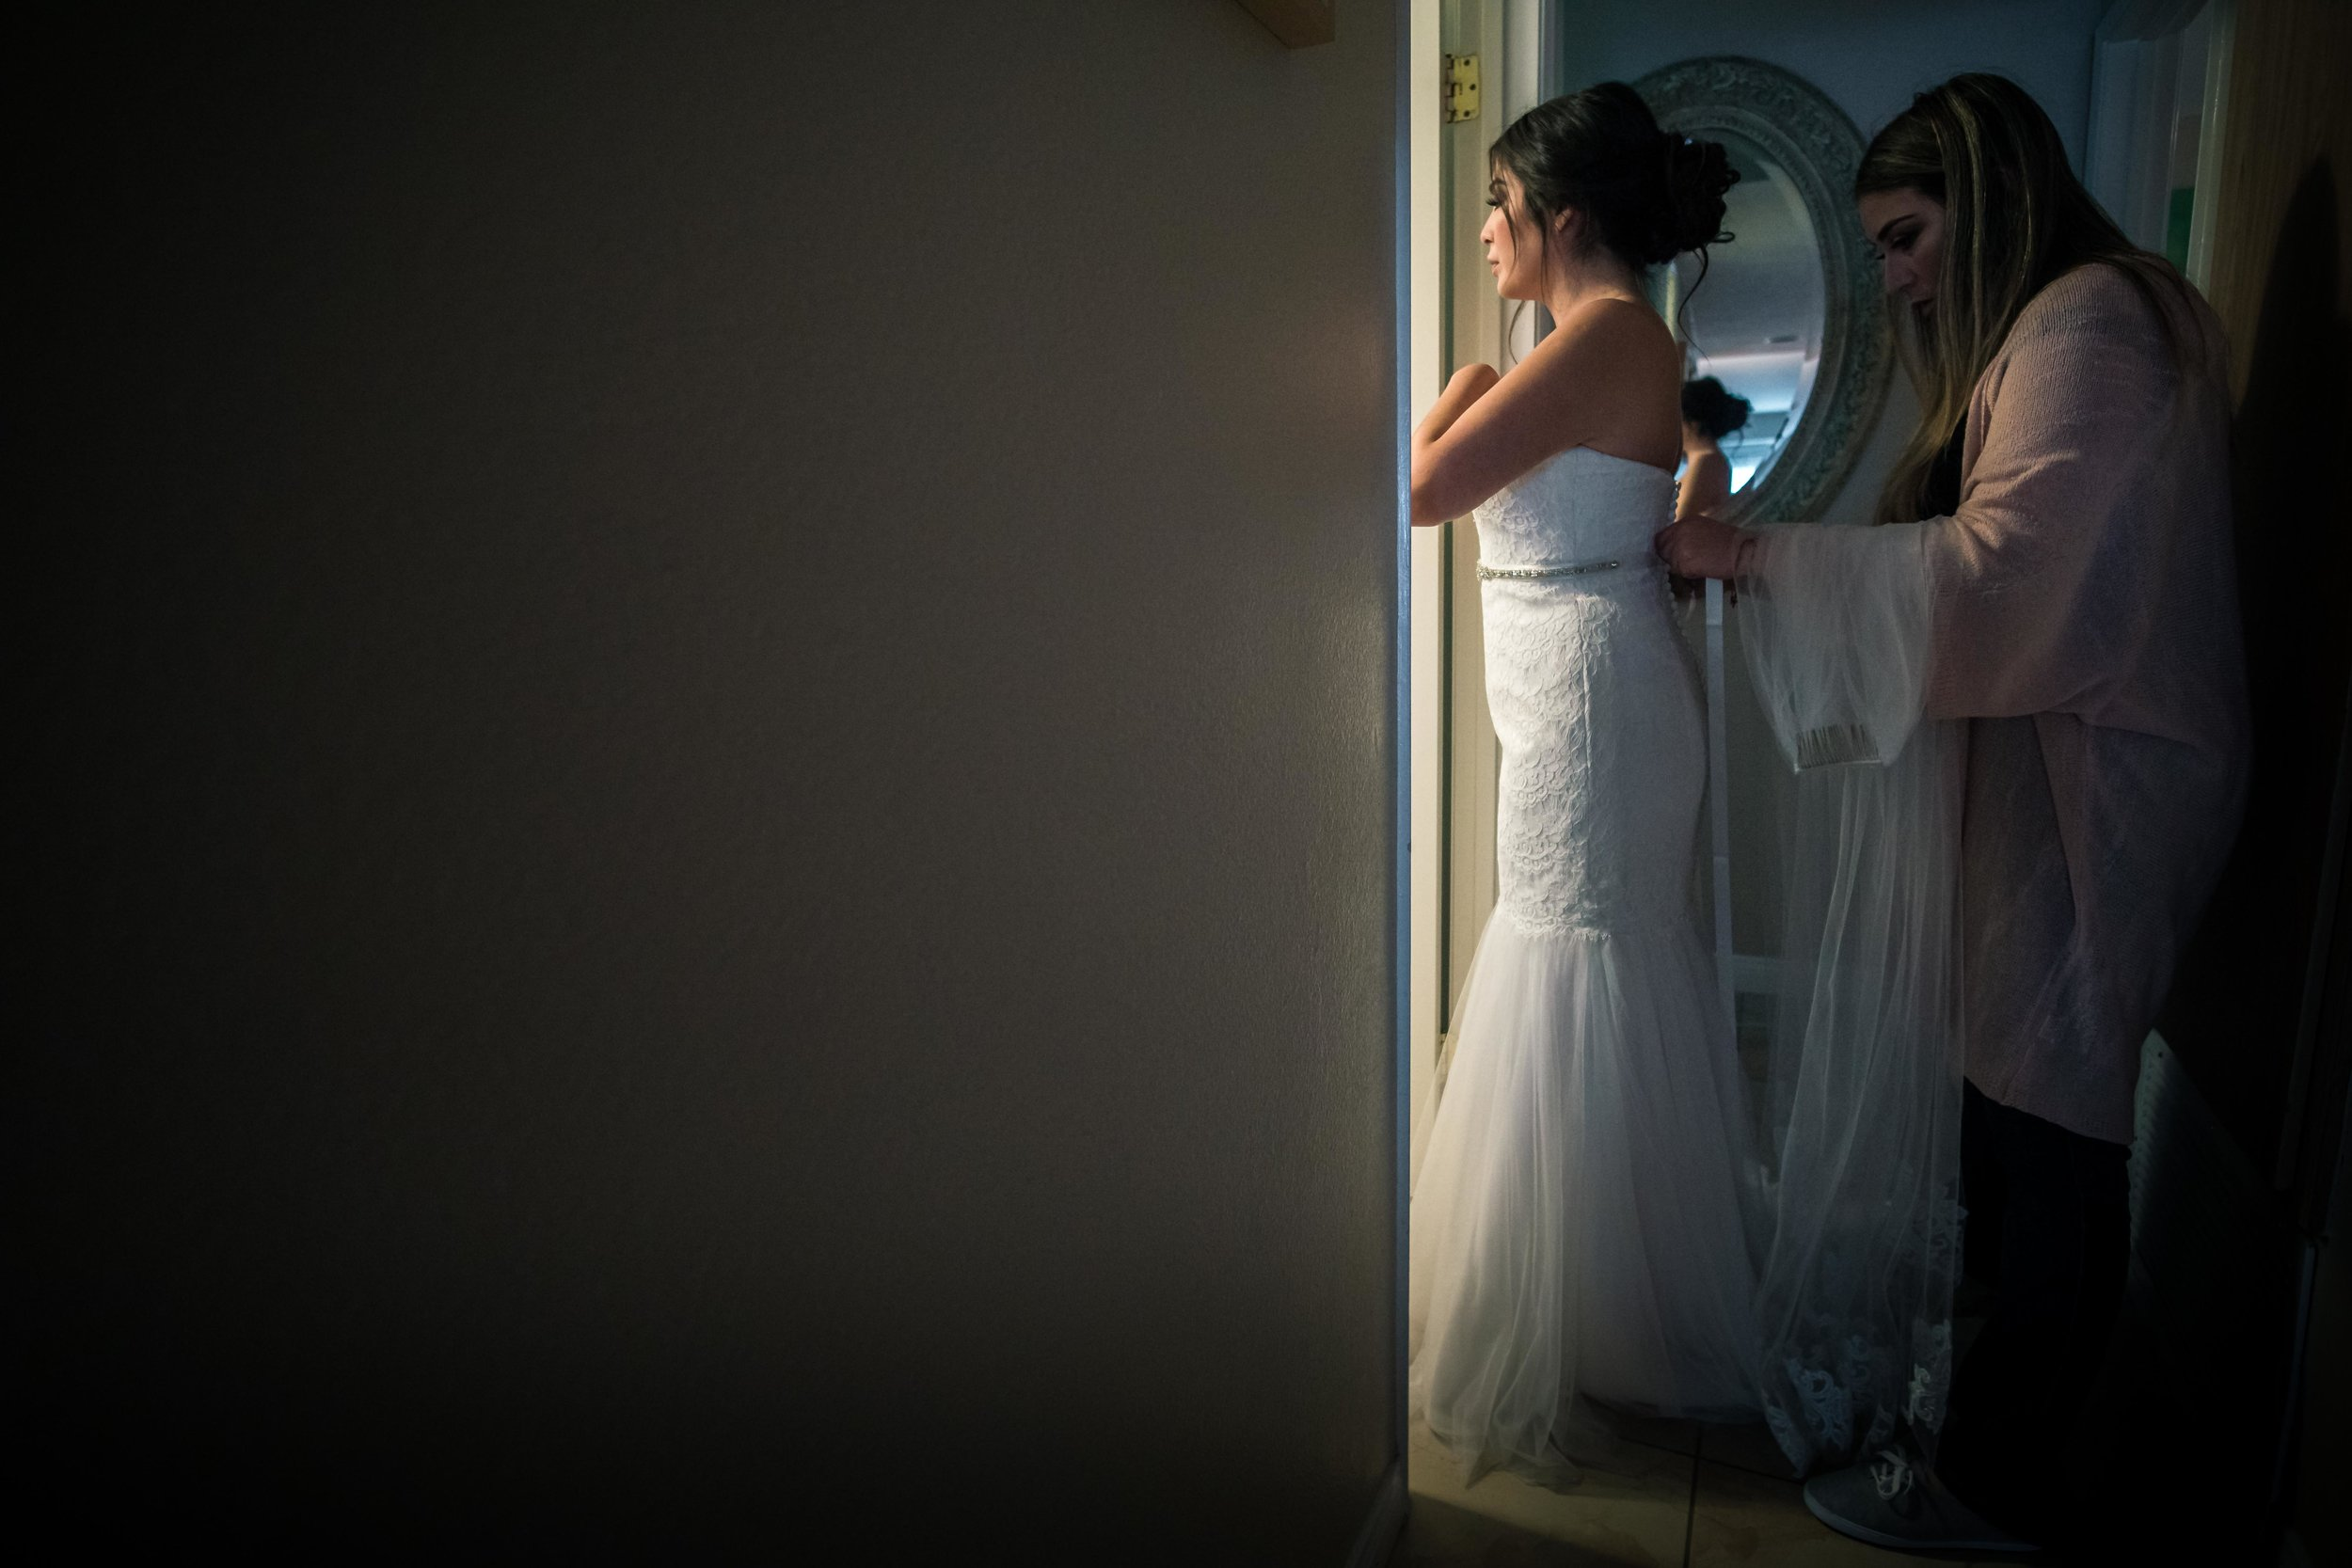 A minimal composition of the bride getting ready with your mother During her wedding preparation